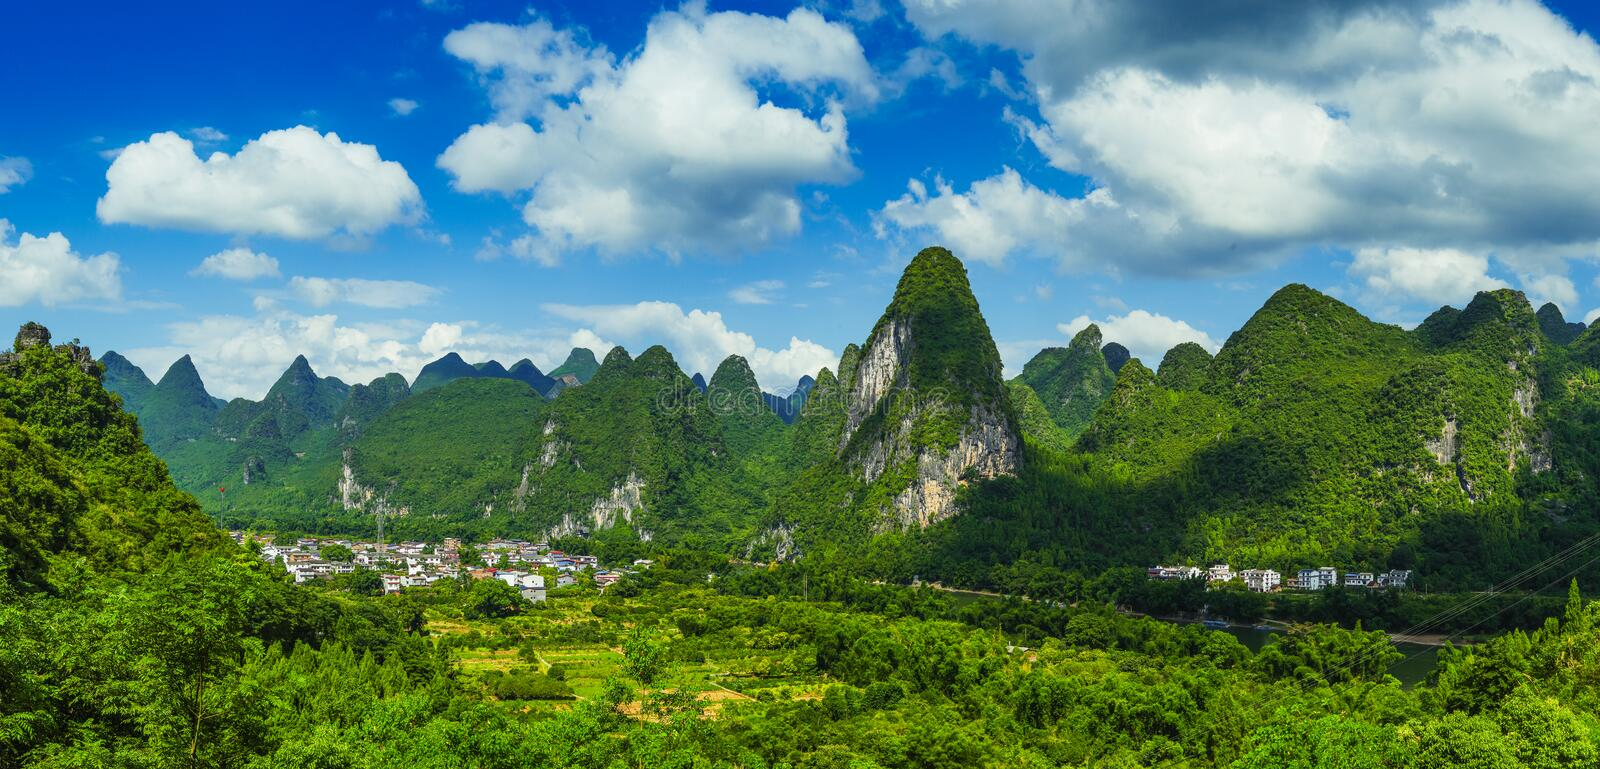 Karst landscape in Guilin. Unique karst landscape in Guilin, famous tourist destinations in china royalty free stock images